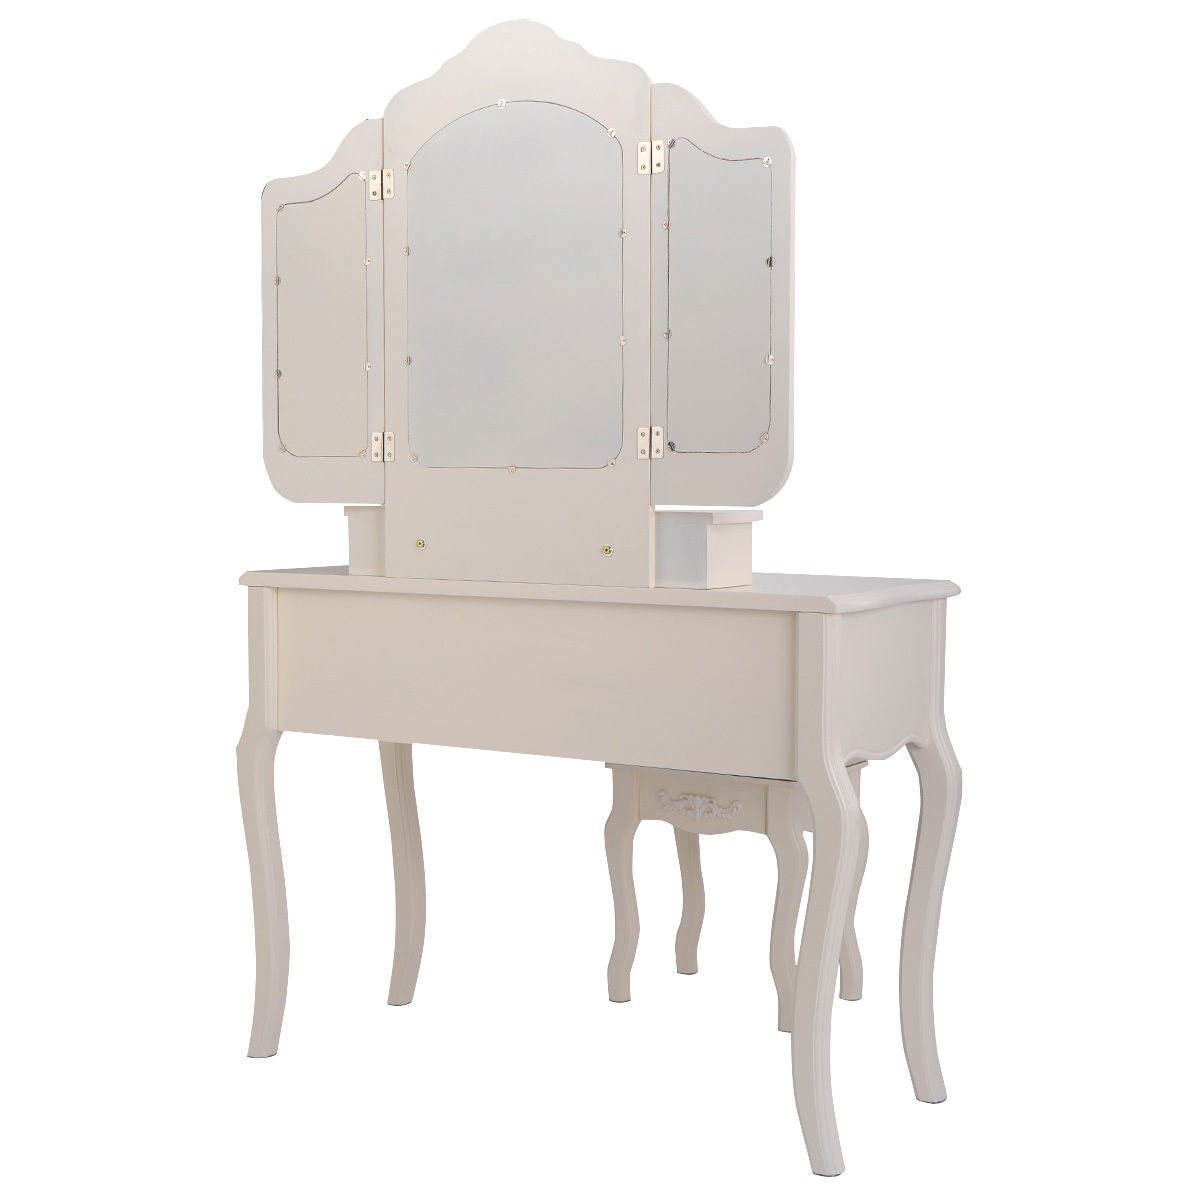 Giantex Tri Folding Vintage White Vanity Makeup Dressing Table Set 5 Drawers &stool 2